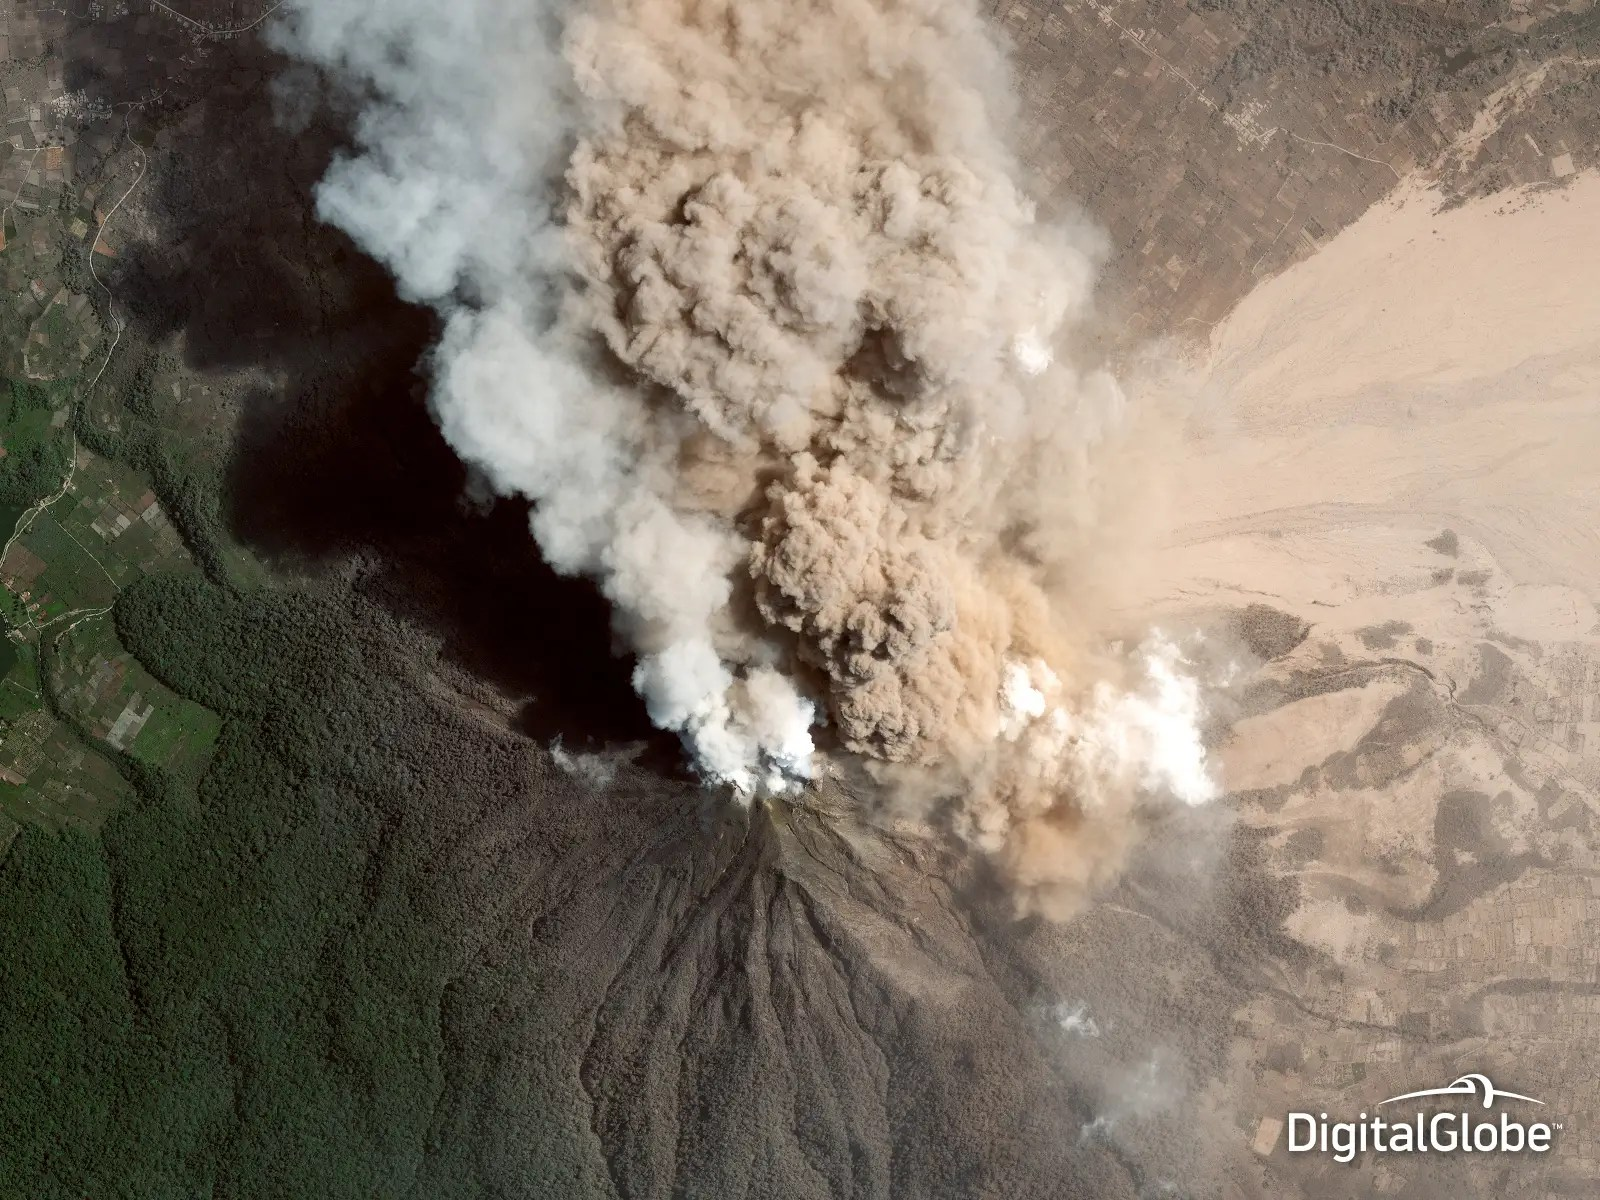 A satellite captured a view of the erupting Mount Sinabung in Indonesia on Jan. 23, 2014. First responders can use such images to assess damage and help create evacuation plans.